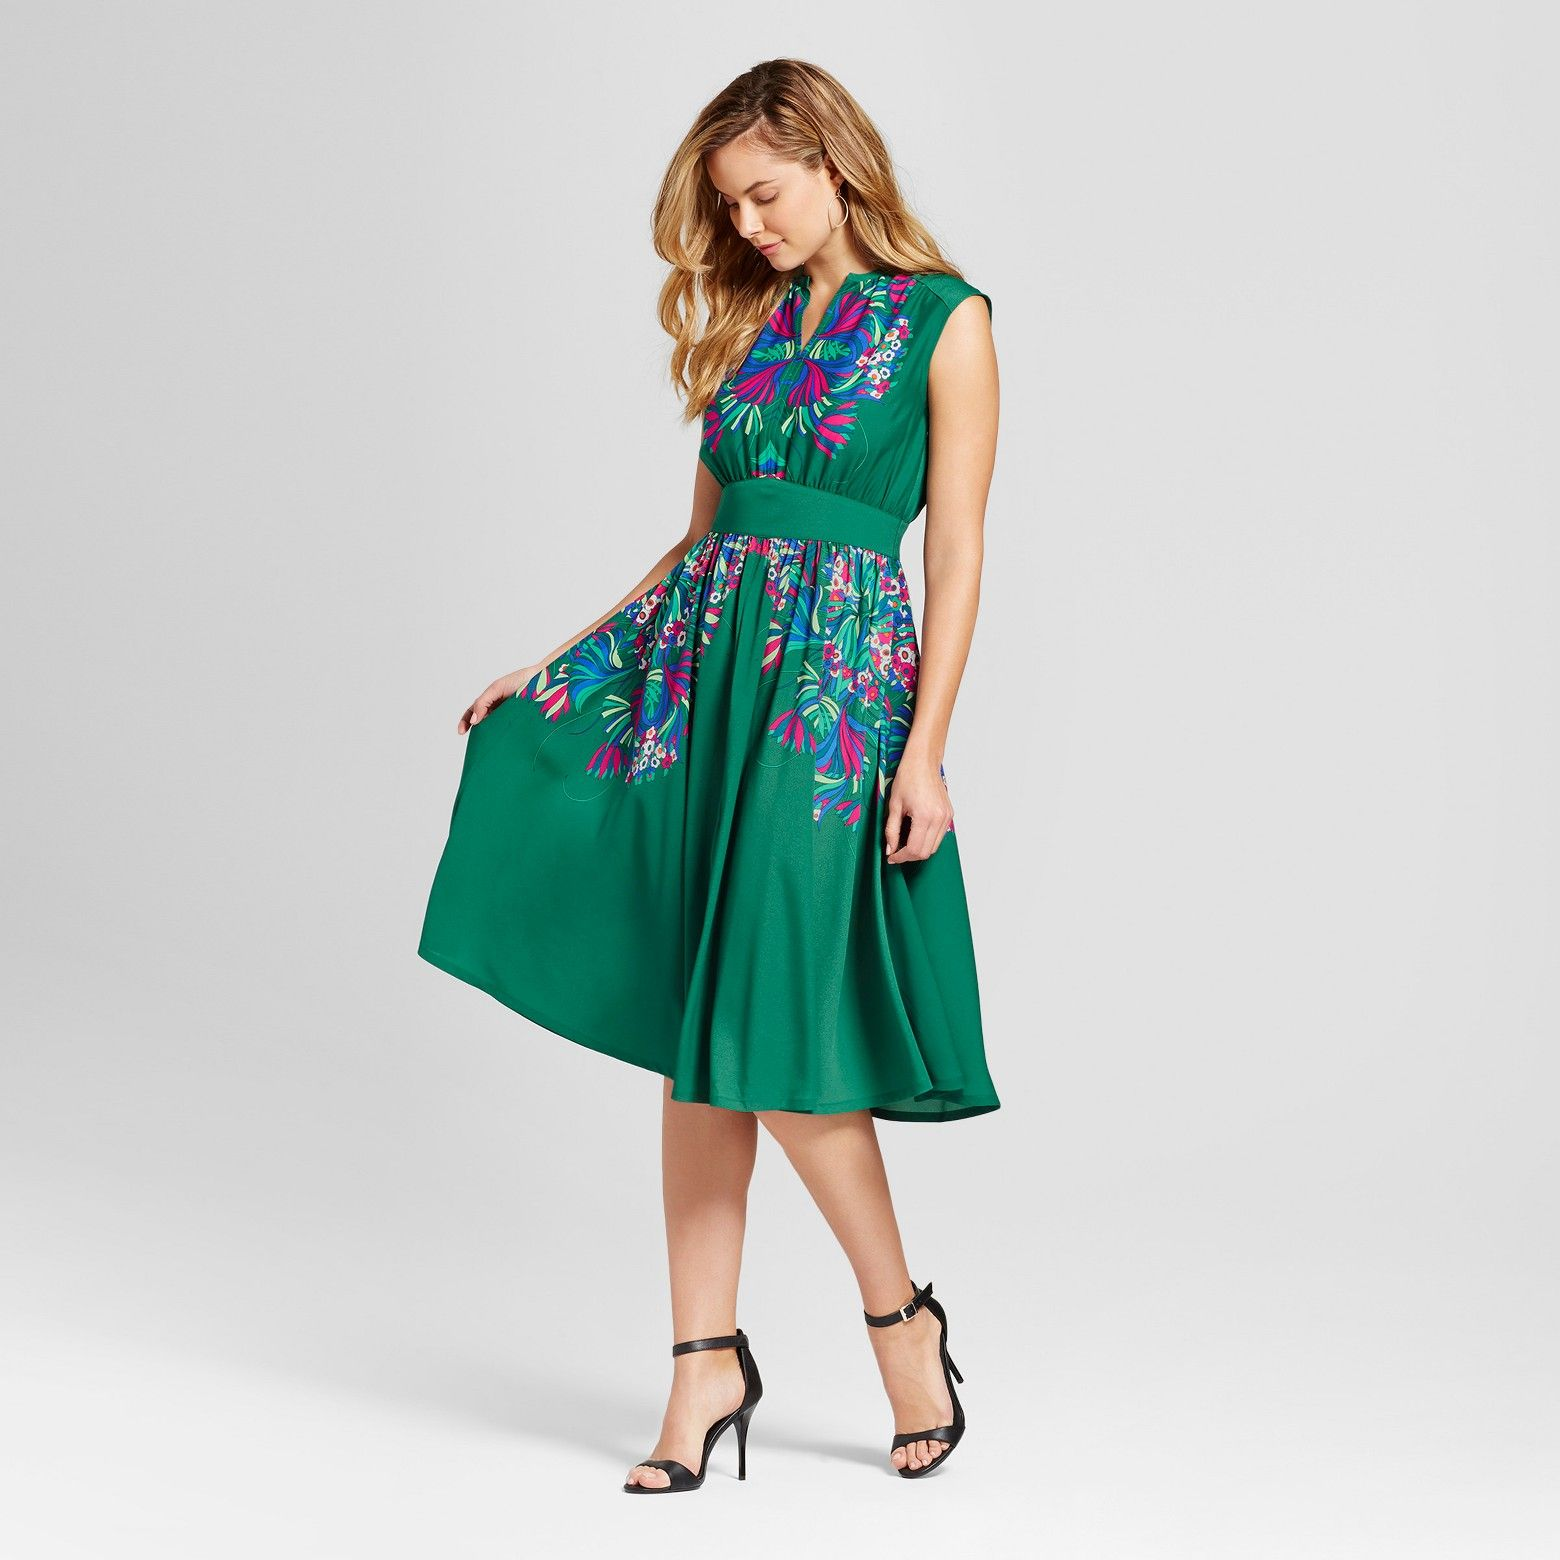 Women 39 S Placed Floral Printed Midi Dress Isani For Target Green Combo S Dresses Printed Midi Dress Floral Prints [ 1560 x 1560 Pixel ]